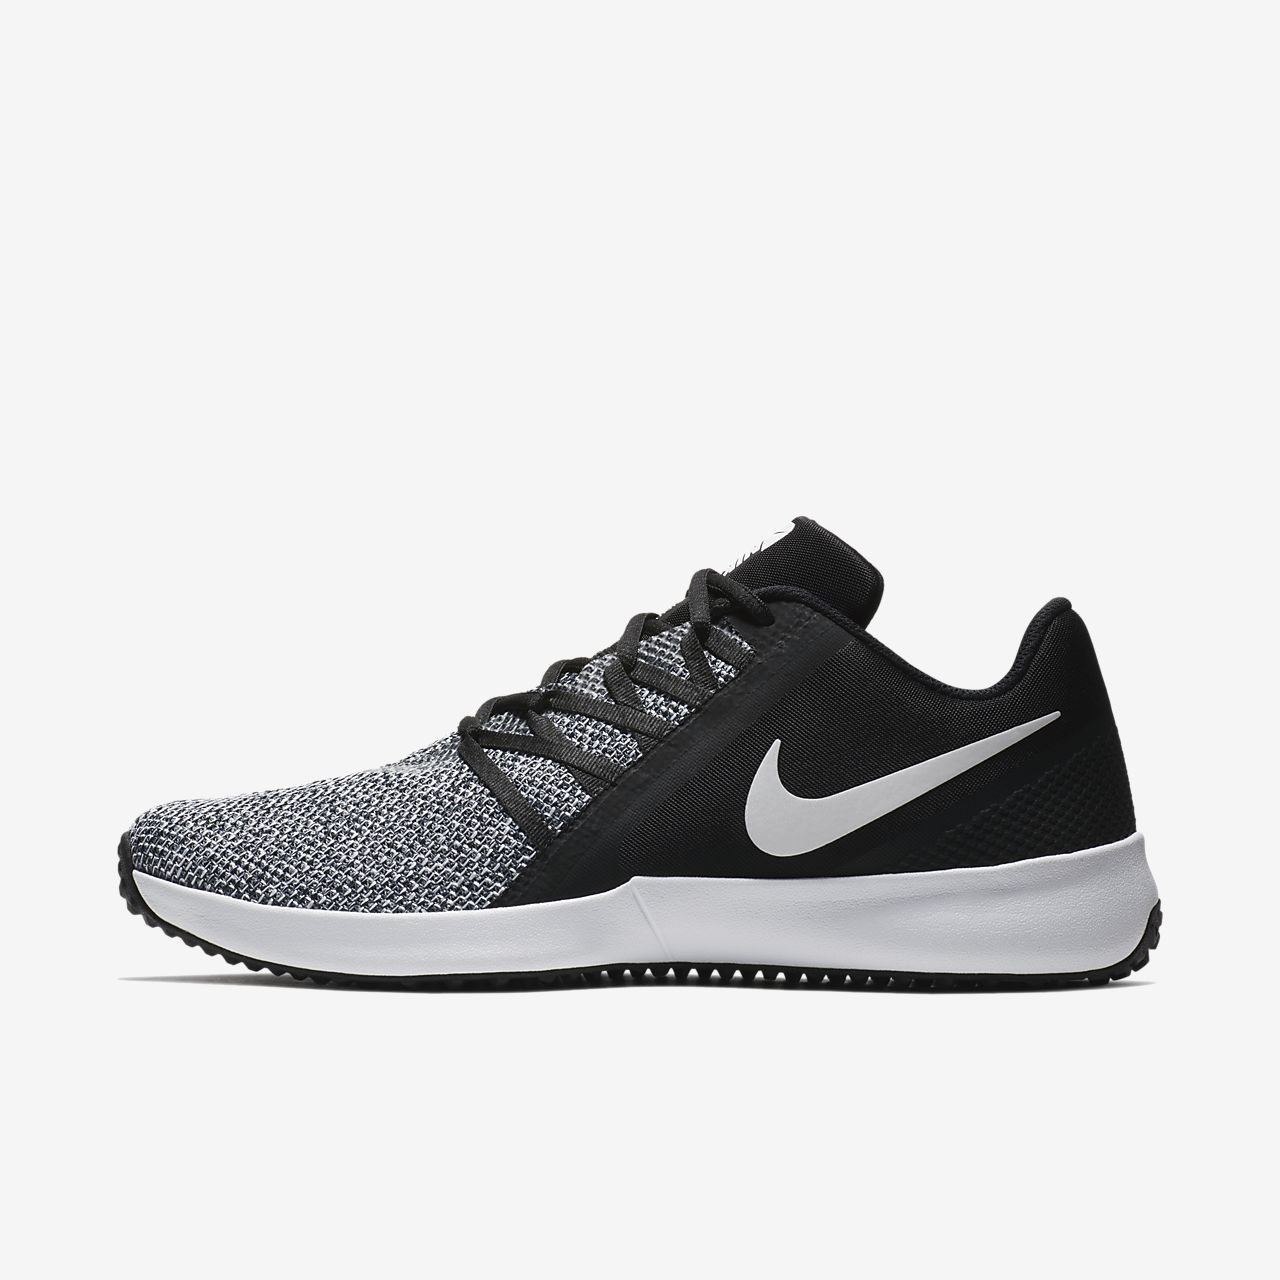 Nike Lunarcharge Essential Mens Running Trainers 923619 Sneakers Shoes (uk 6.5 us 7.5 eu 40.5, Midnight Navy 401)